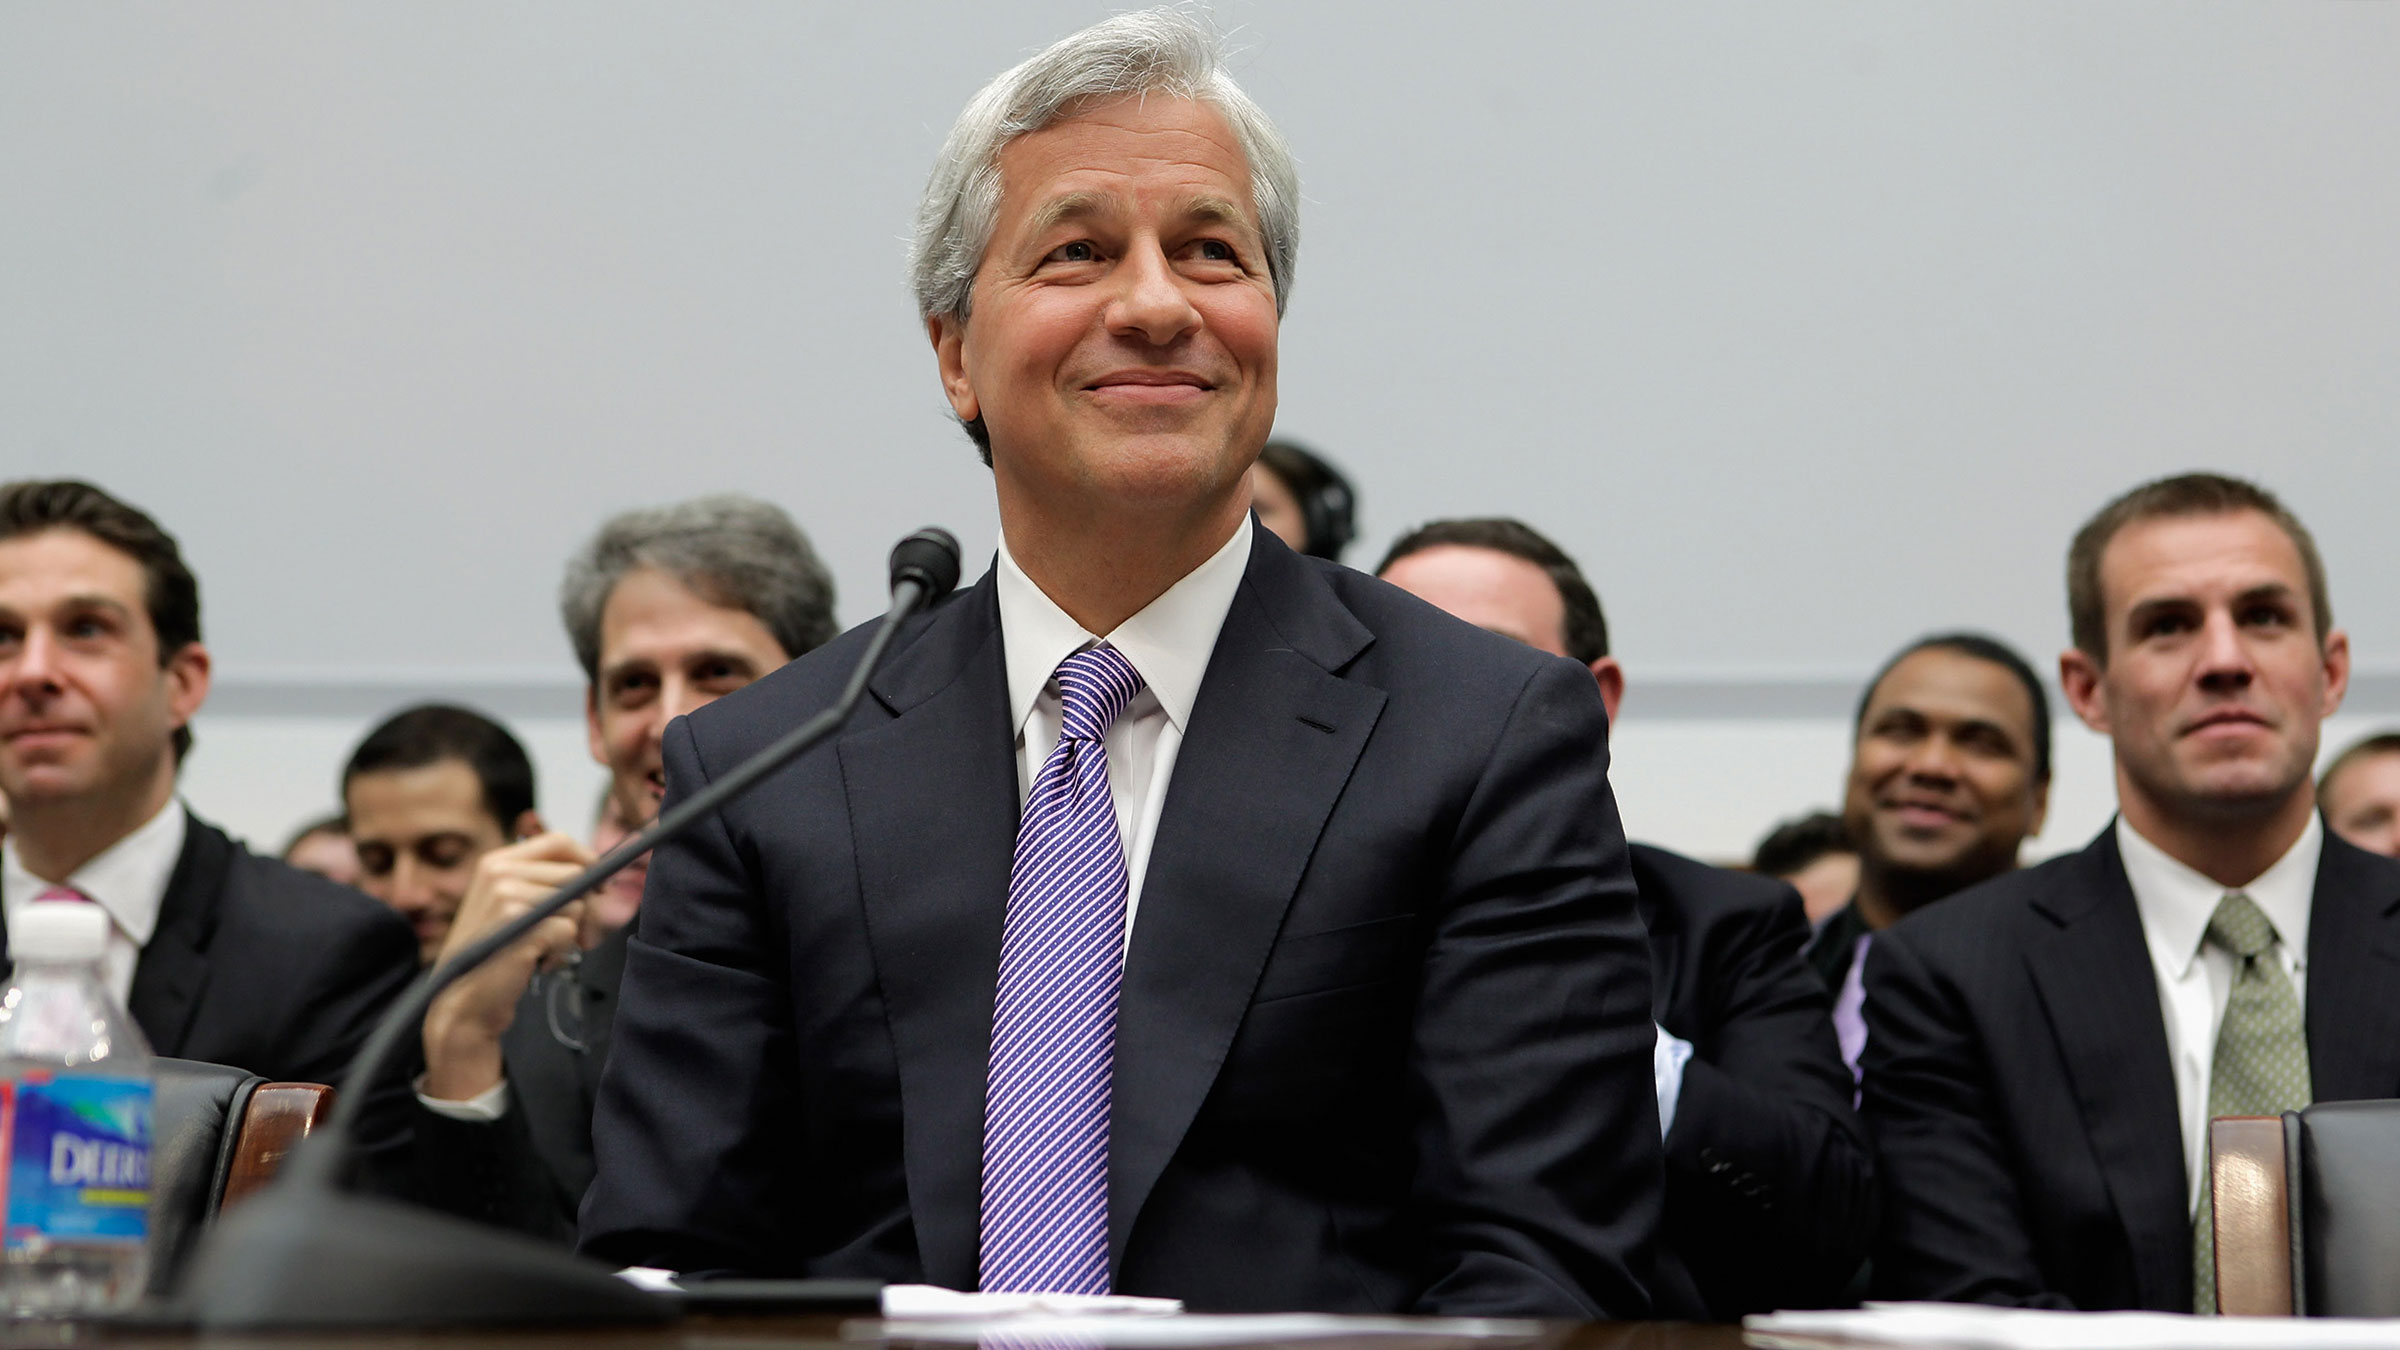 Jamie Dimon is all smiles